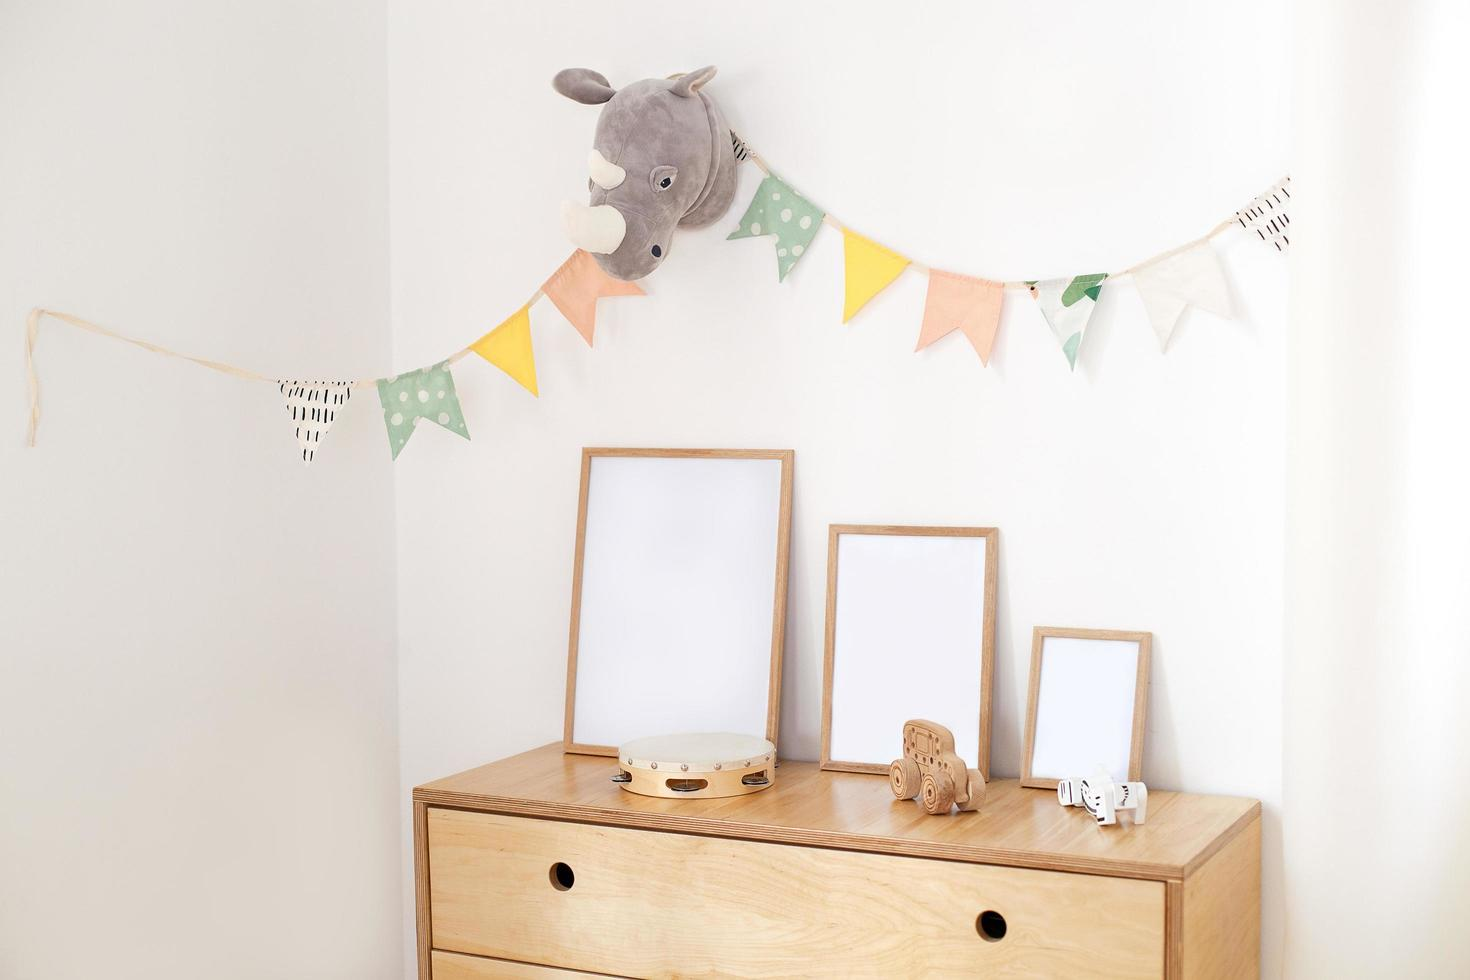 Wooden eco toys in children's room photo